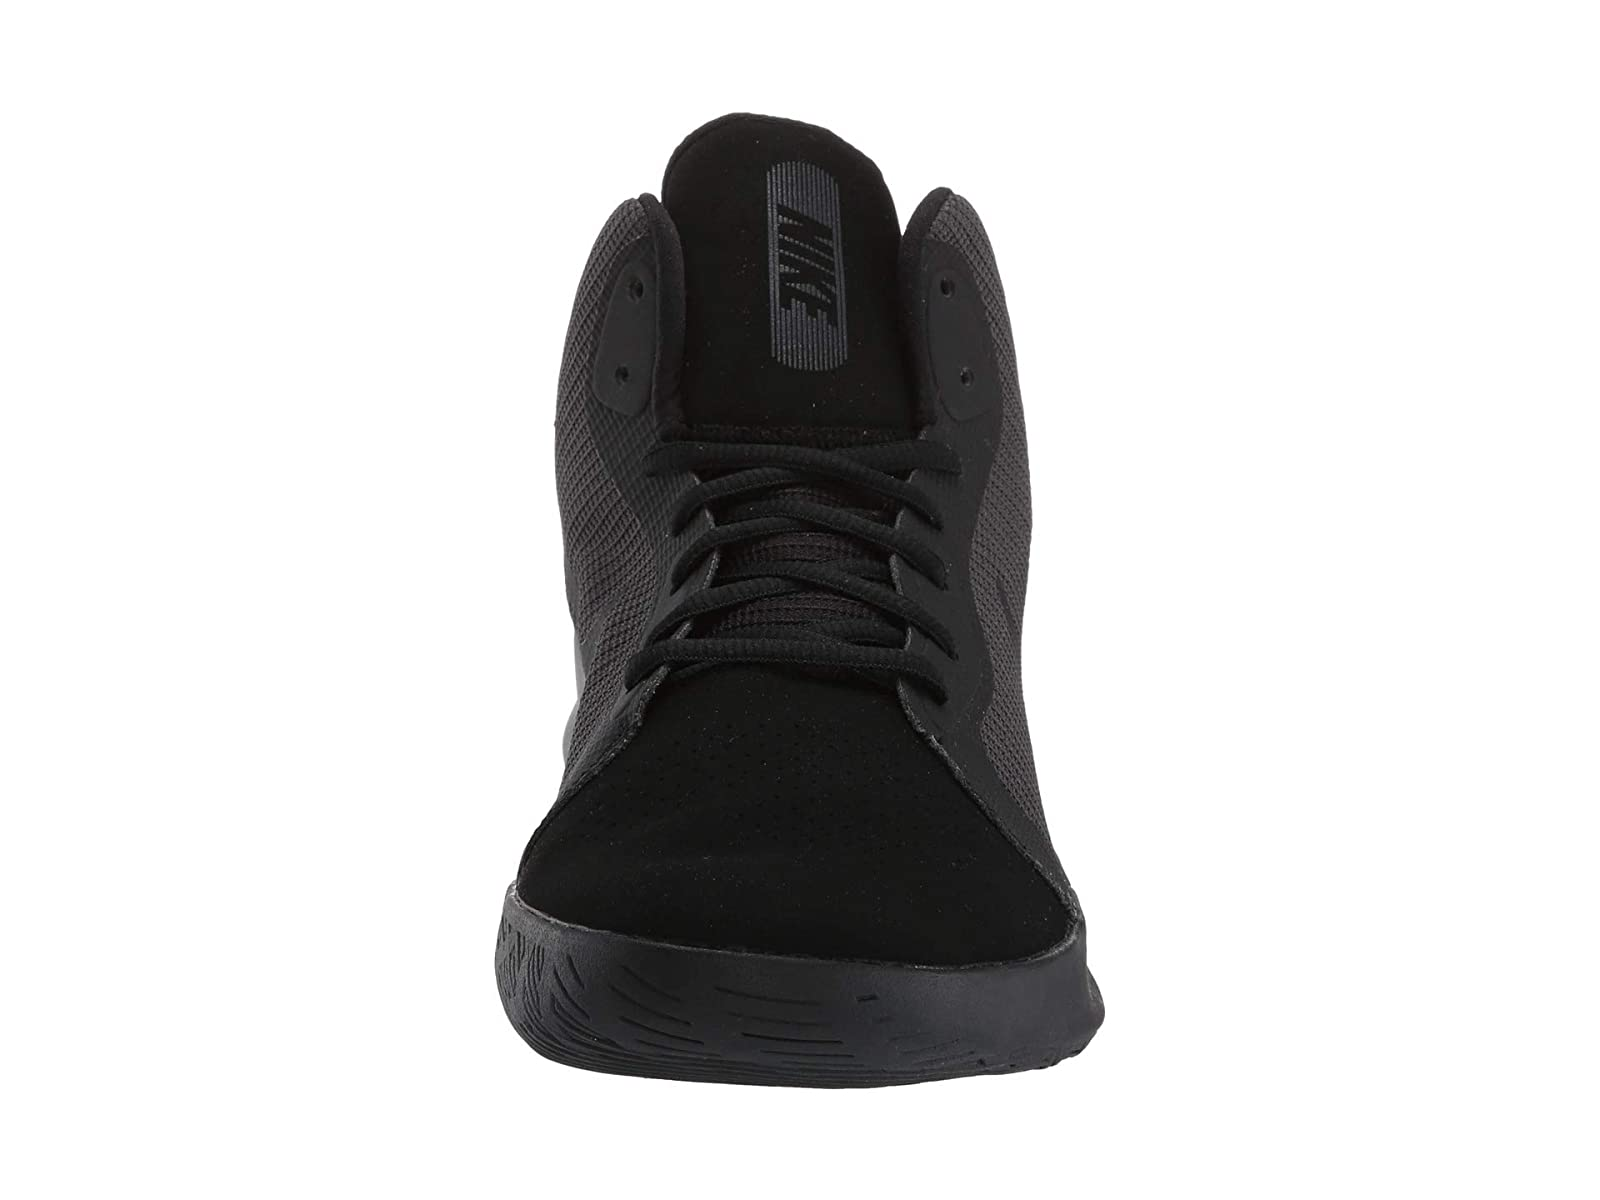 Man-039-s-Sneakers-amp-Athletic-Shoes-Nike-Precision-III-NBK thumbnail 8